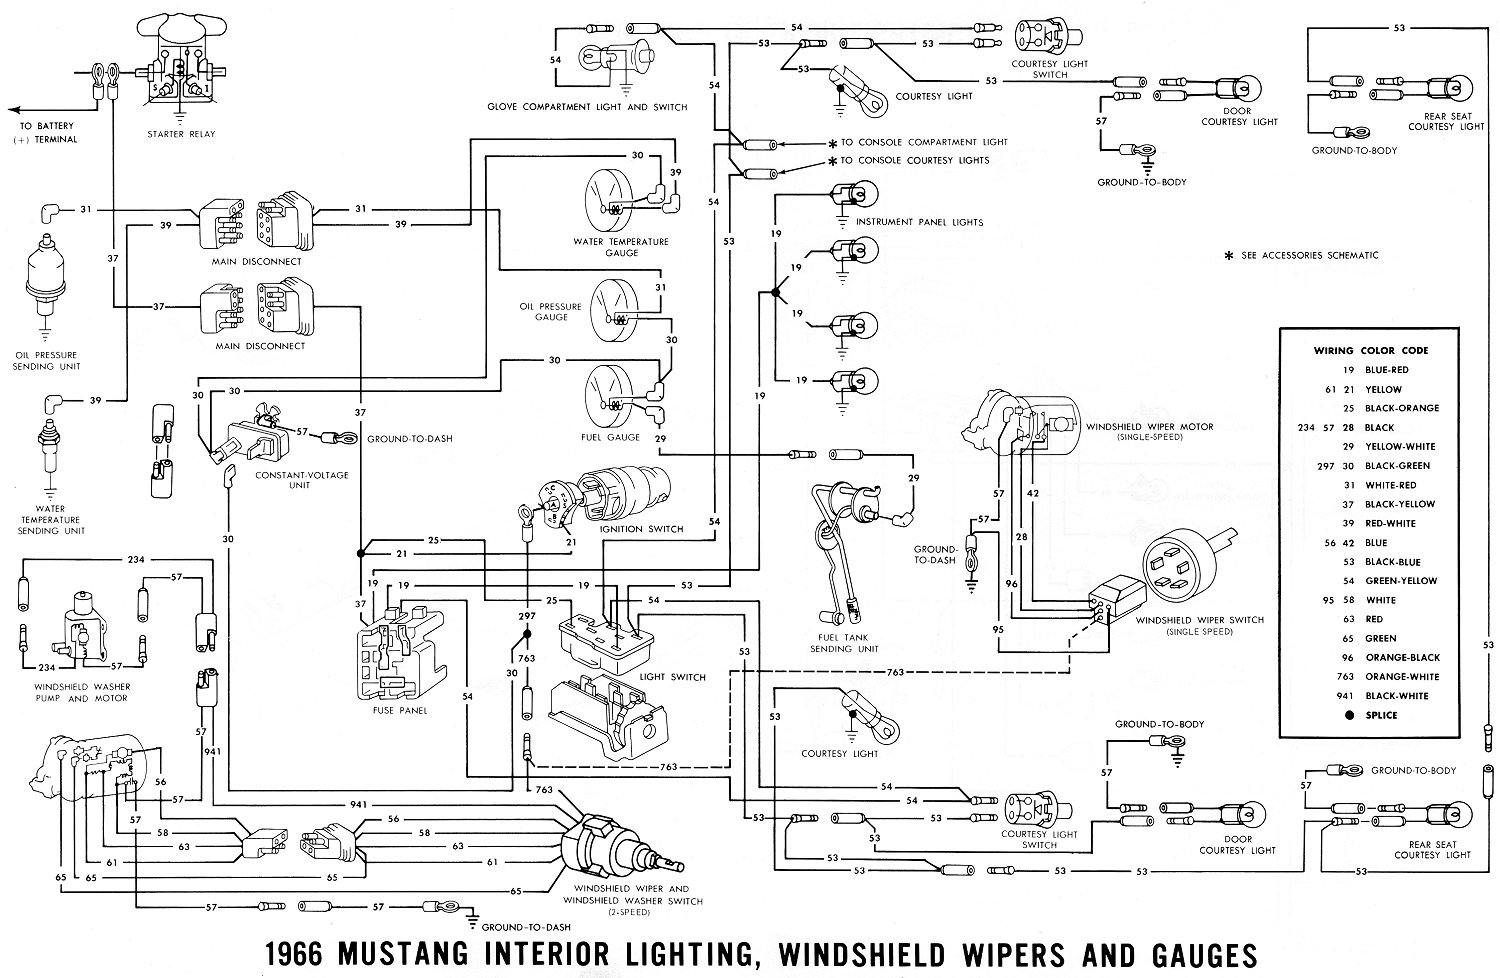 66inter1 1966 mustang wiring diagrams average joe restoration 67 mustang wiring diagram at alyssarenee.co